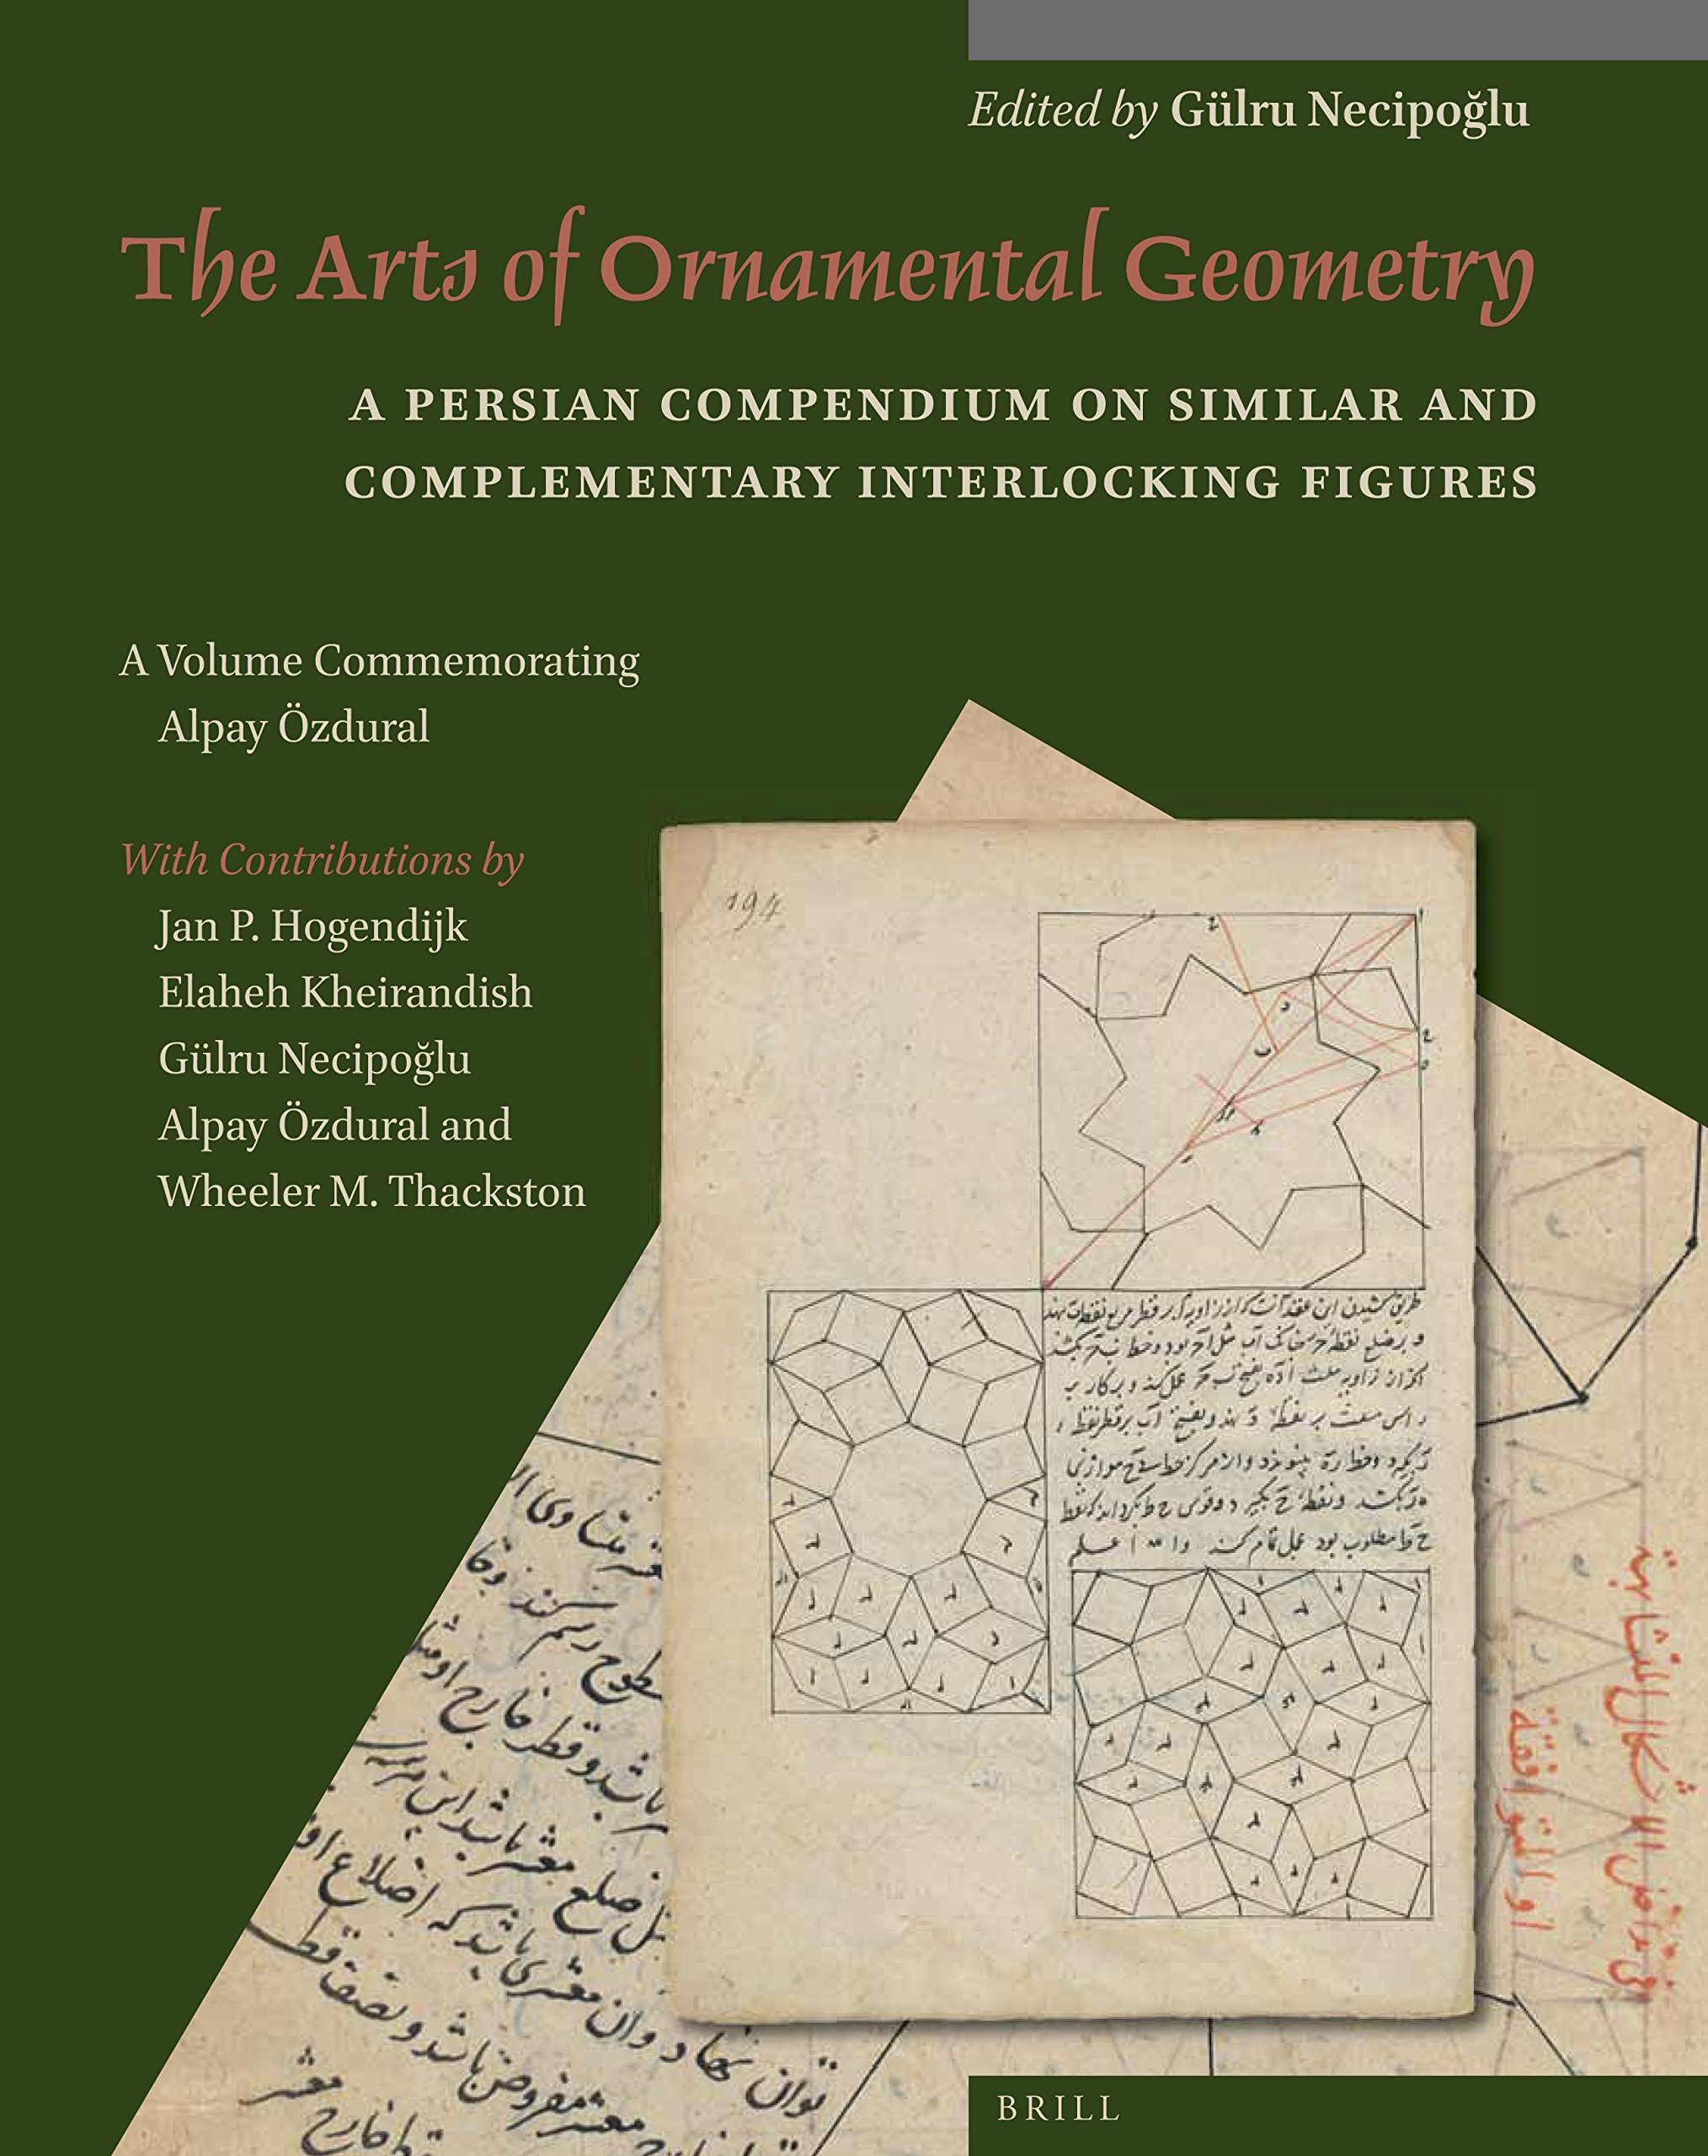 The Arts of Ornamental Geometry: A Persian Compendium on Similar and Complementary Interlocking Figures: A Volume Commemorating Alpay Özdural (Studies ... to Muqarnas) (English and Persian Edition) by BRILL (Image #1)